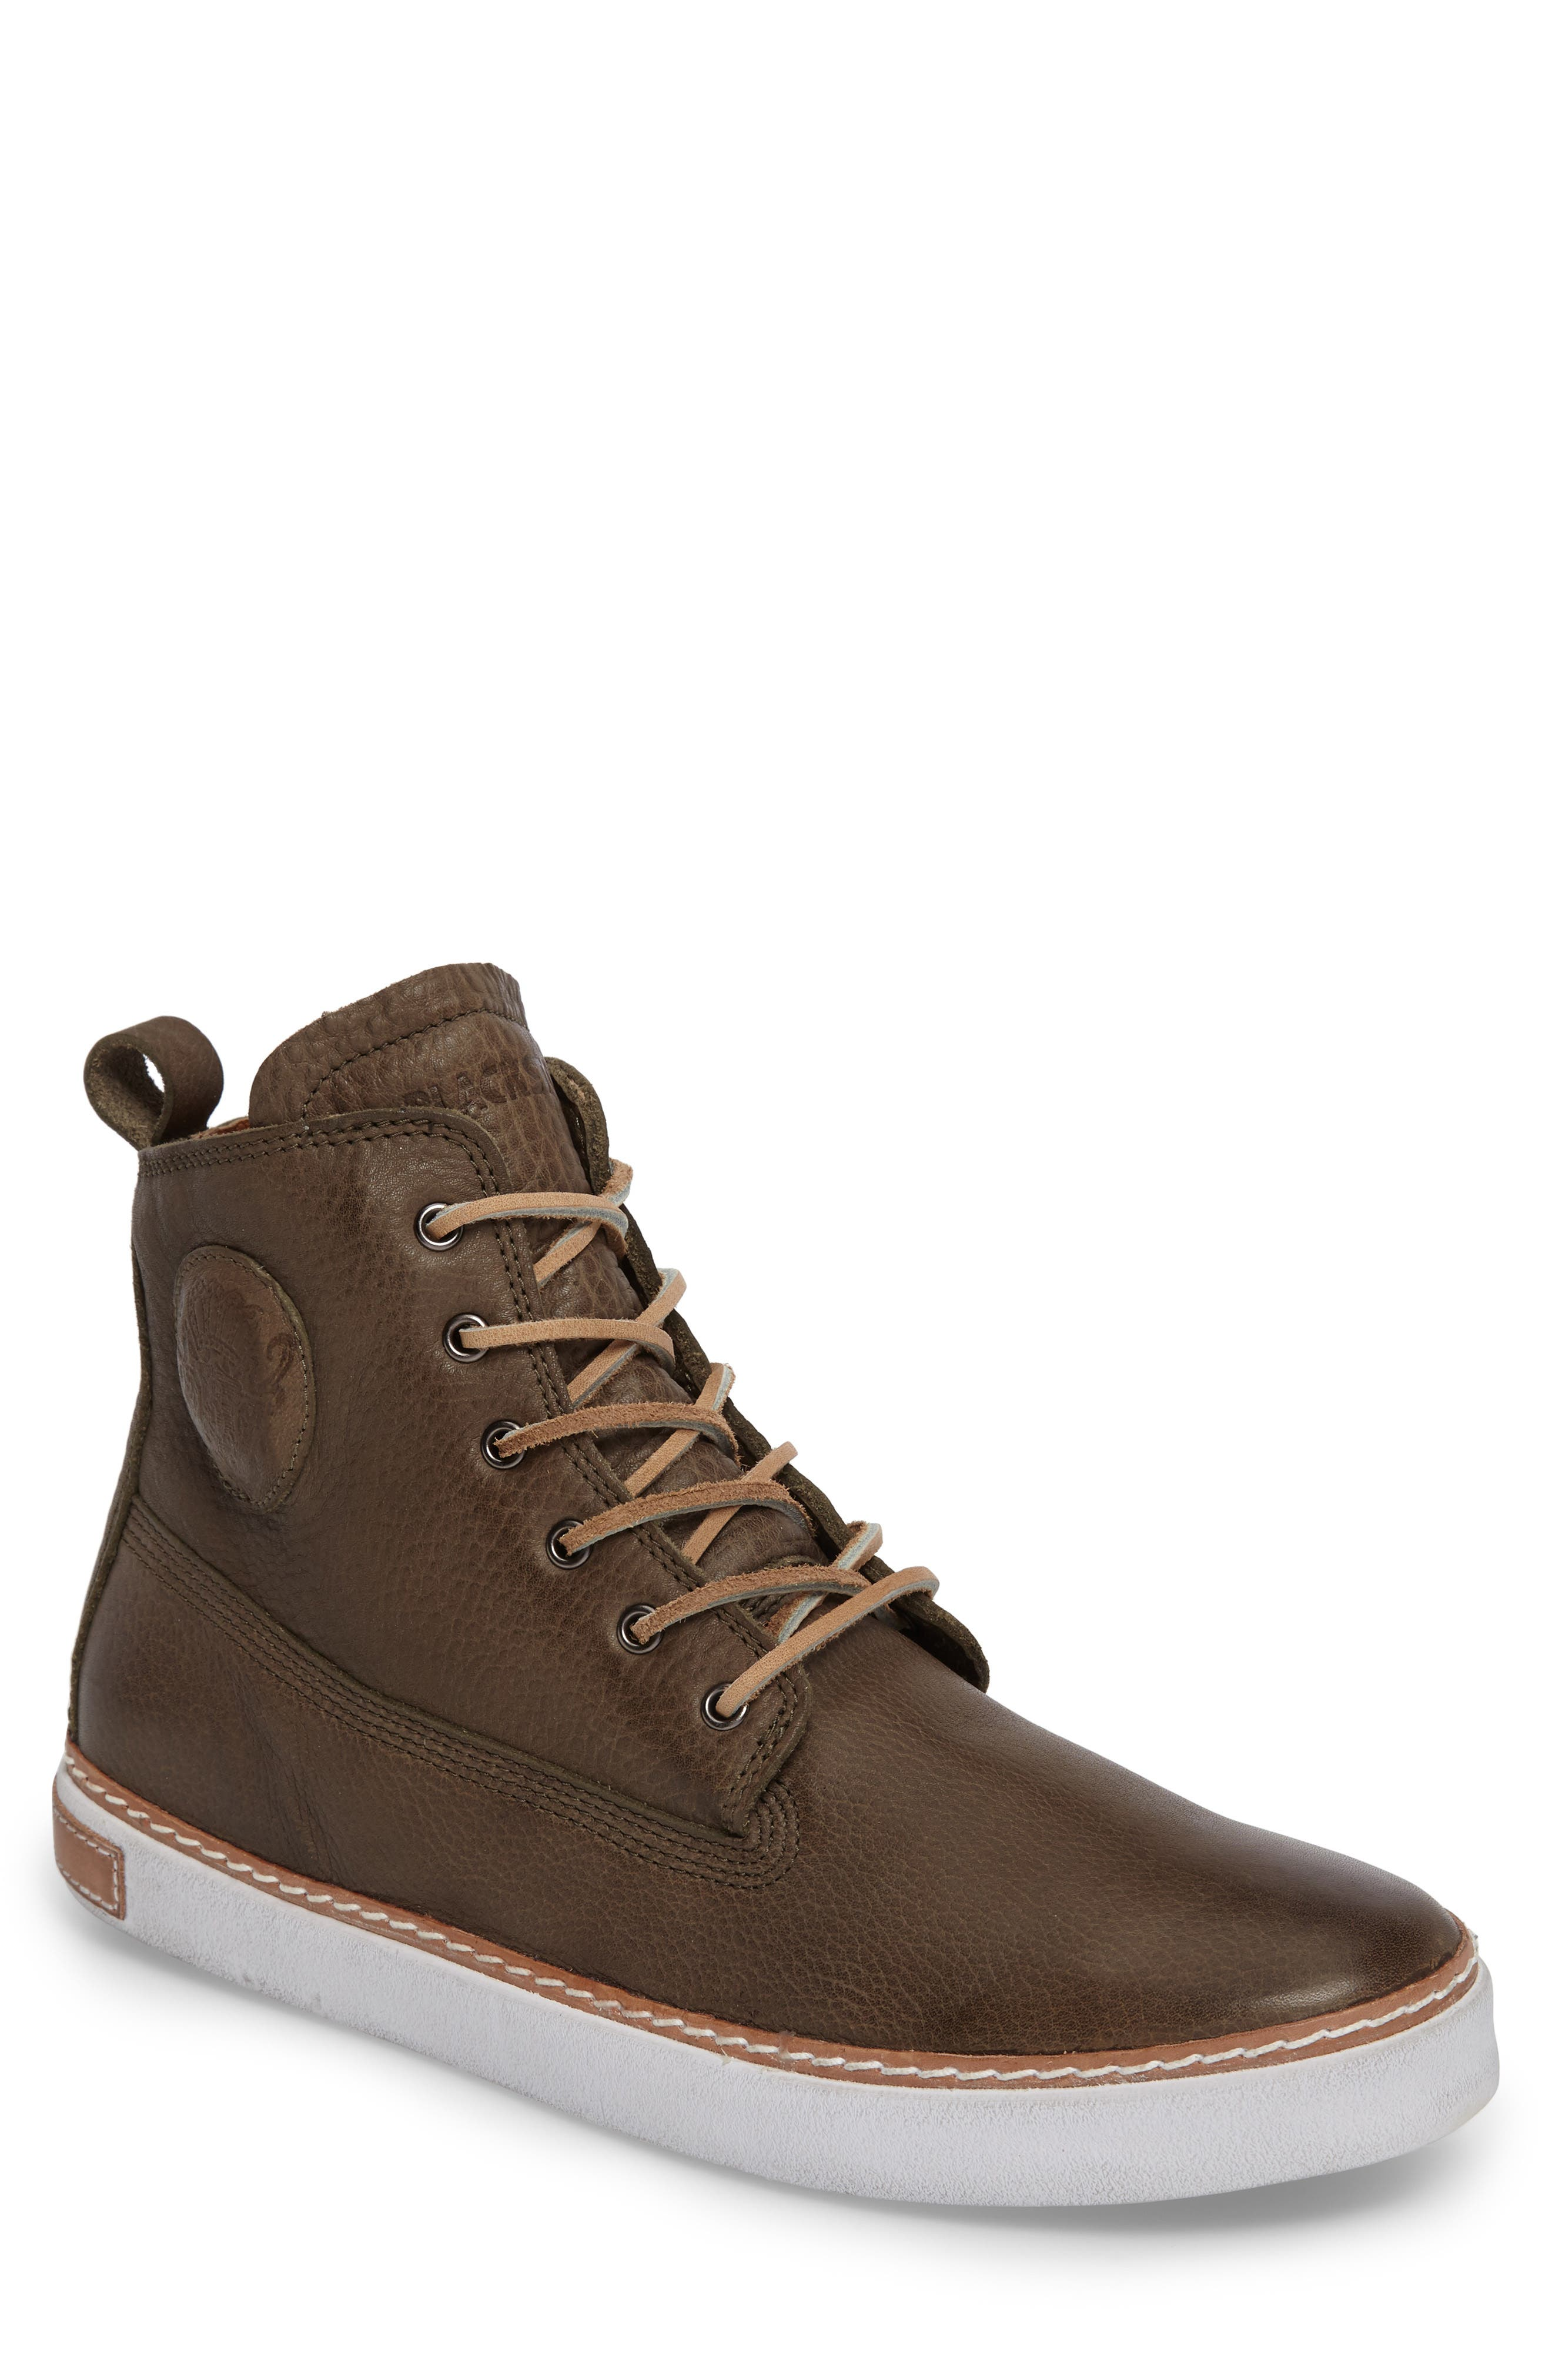 Hearty, durable leather enriches a high-top sneaker outfitted with bold brass hardware for eye-catching shine. Style Name: Blackstone \\\'Am02\\\' Sneaker (Men). Style Number: 5253403 5. Available in stores.